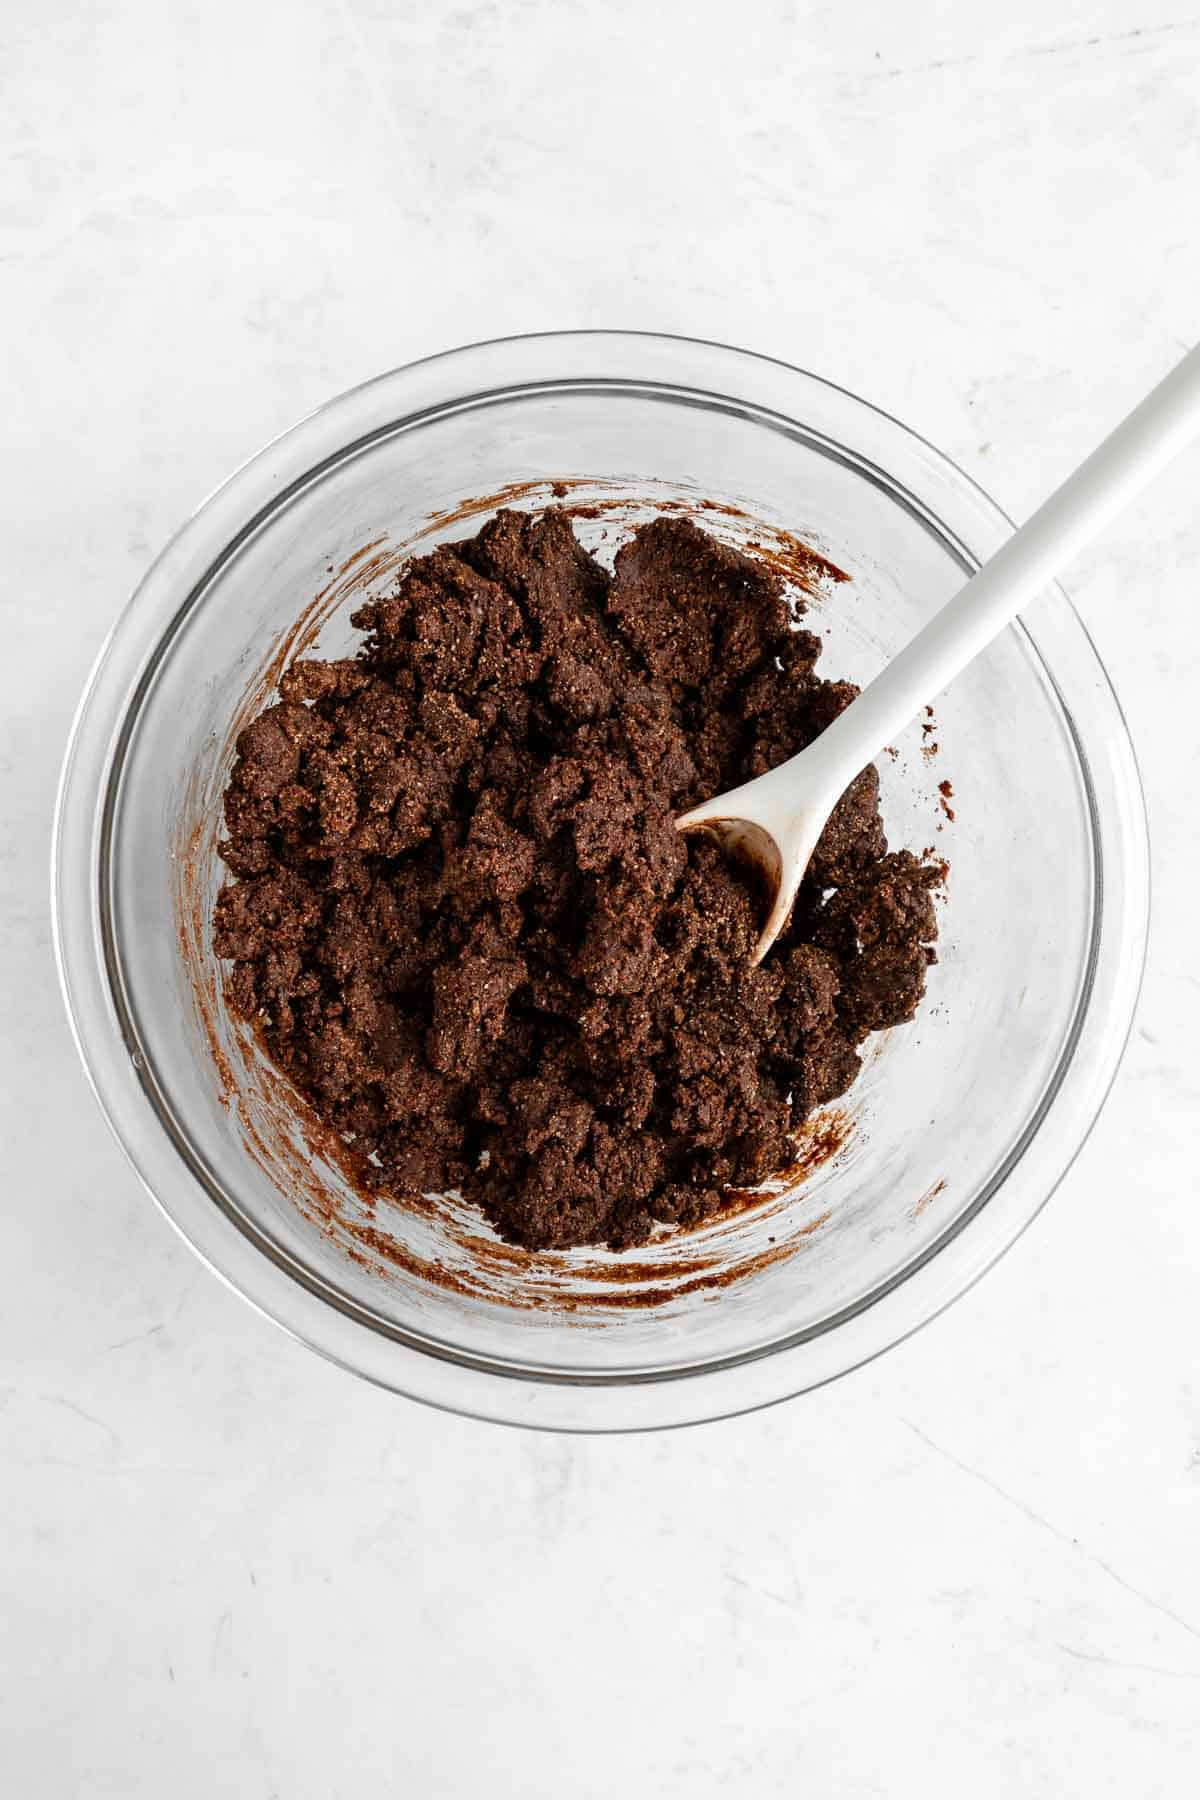 mixing raw brownie dough in a glass bowl